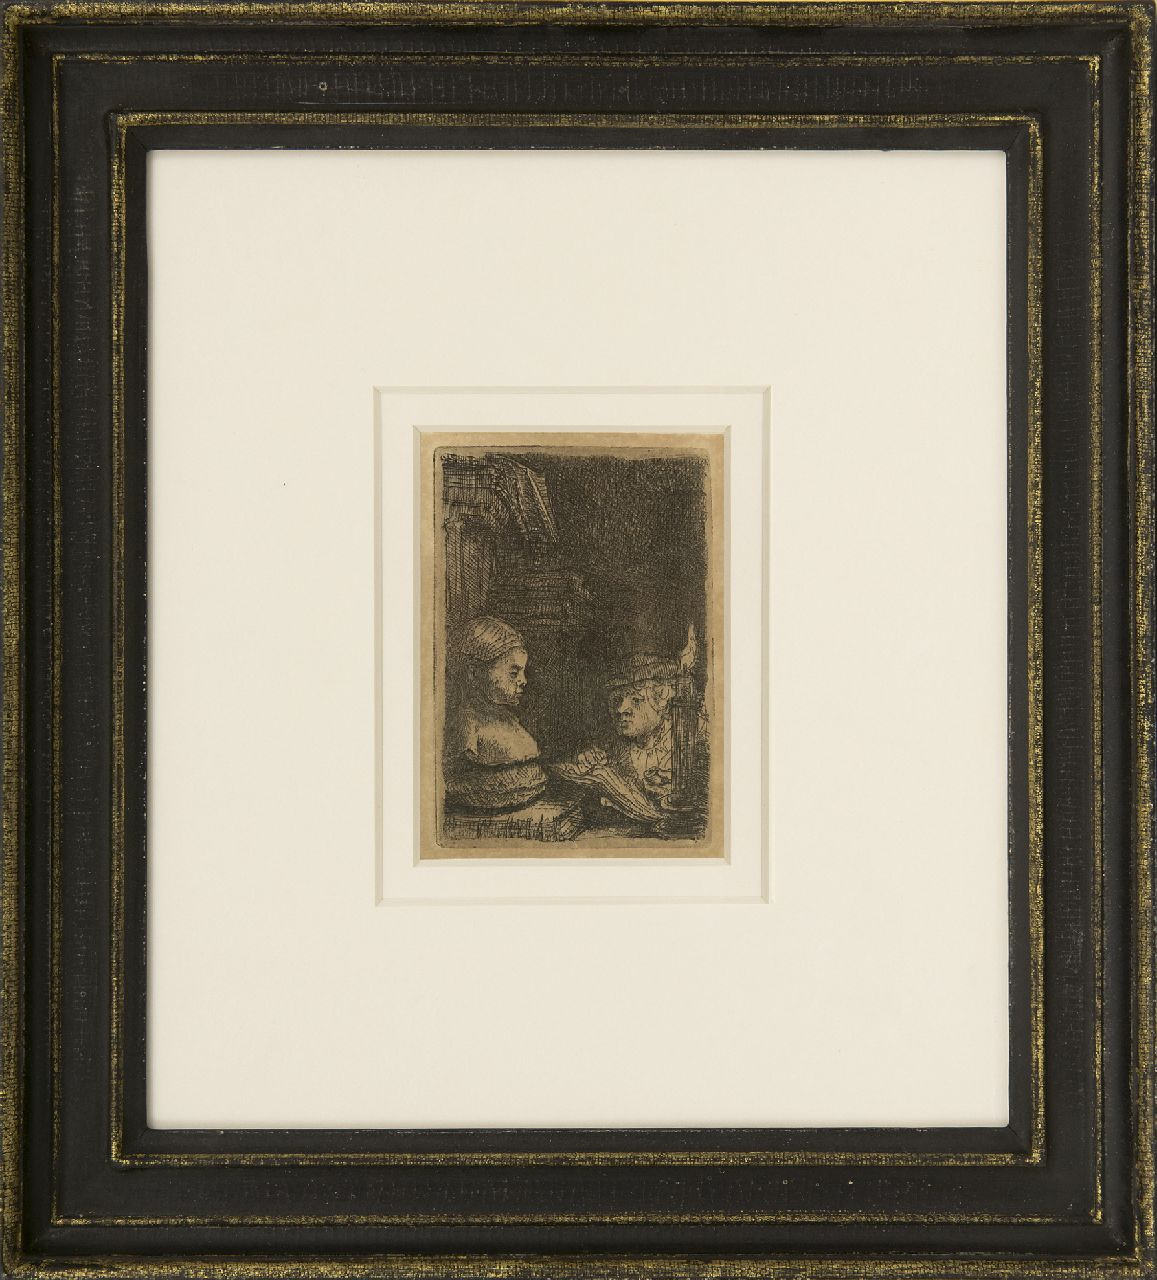 Rembrandt (Rembrandt Harmensz. van Rijn)   | Rembrandt (Rembrandt Harmensz. van Rijn) | Prints and Multiples offered for sale | A man making a drawing after a plaster model, etching on paper 9.3 x 6.3 cm